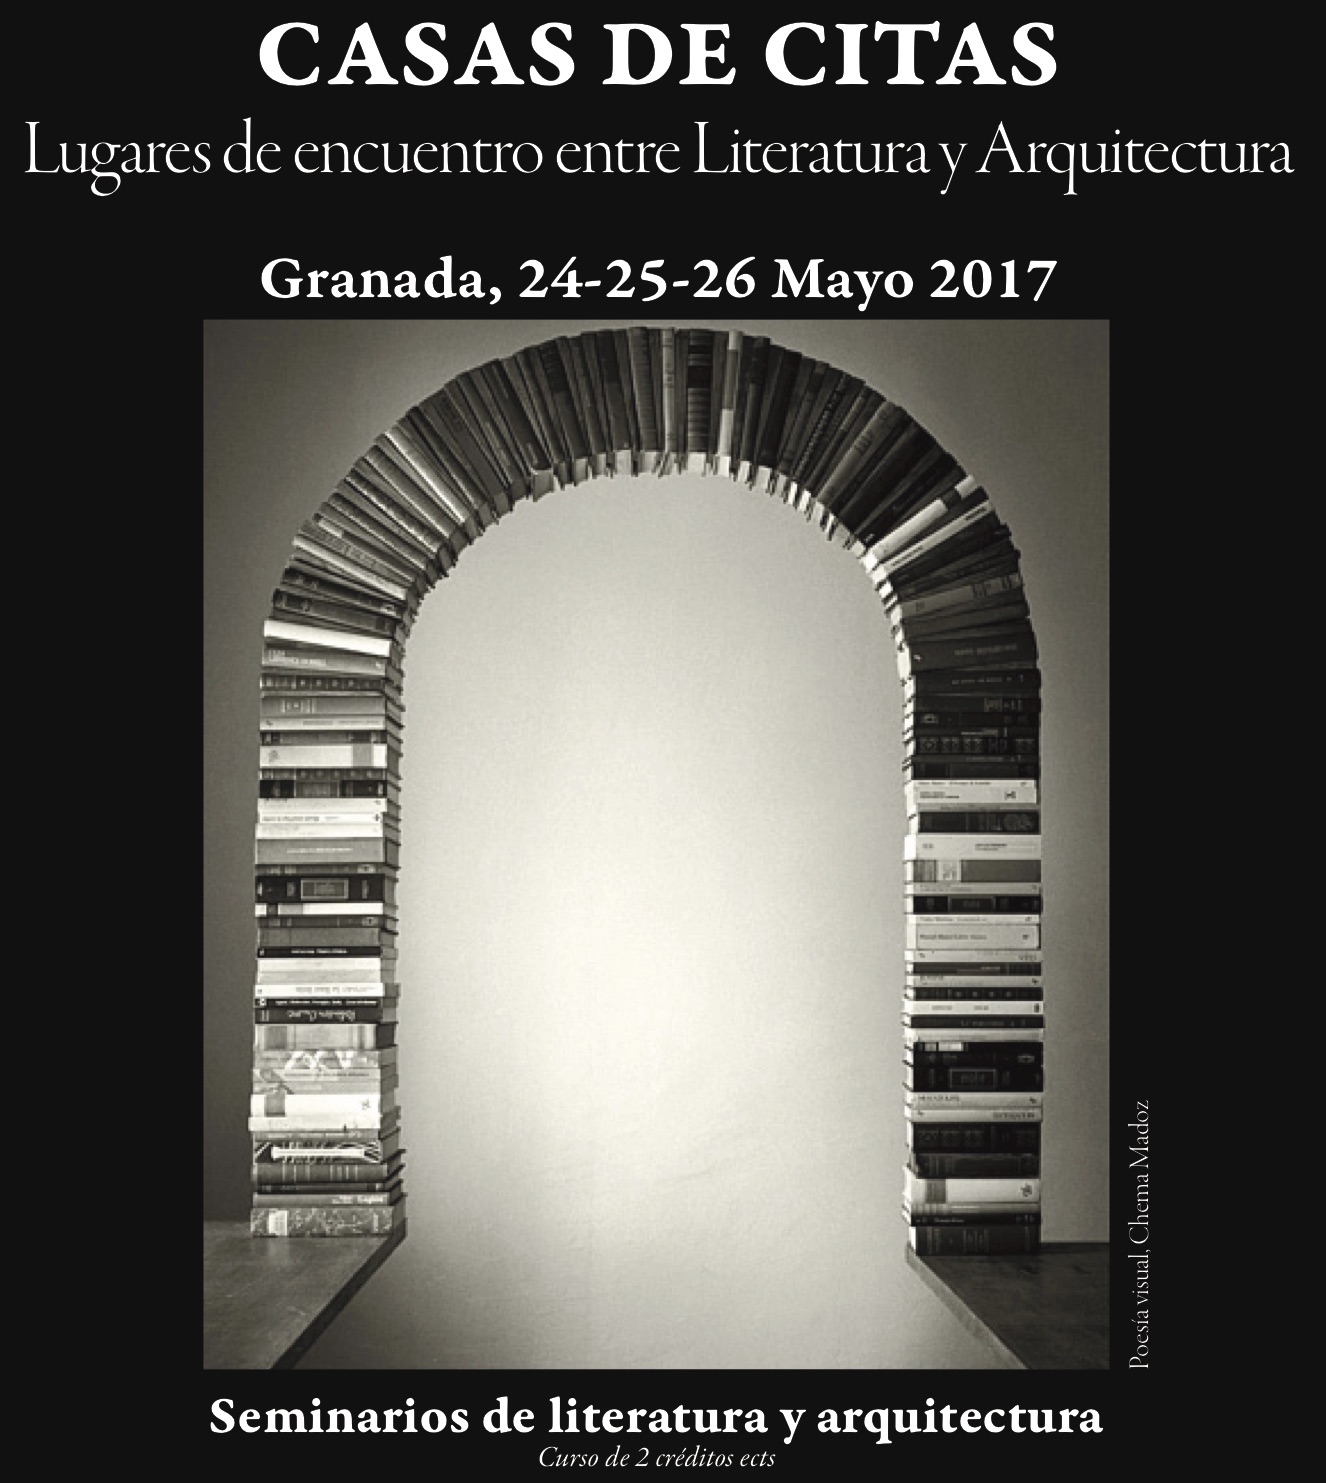 architecture archives archpapers